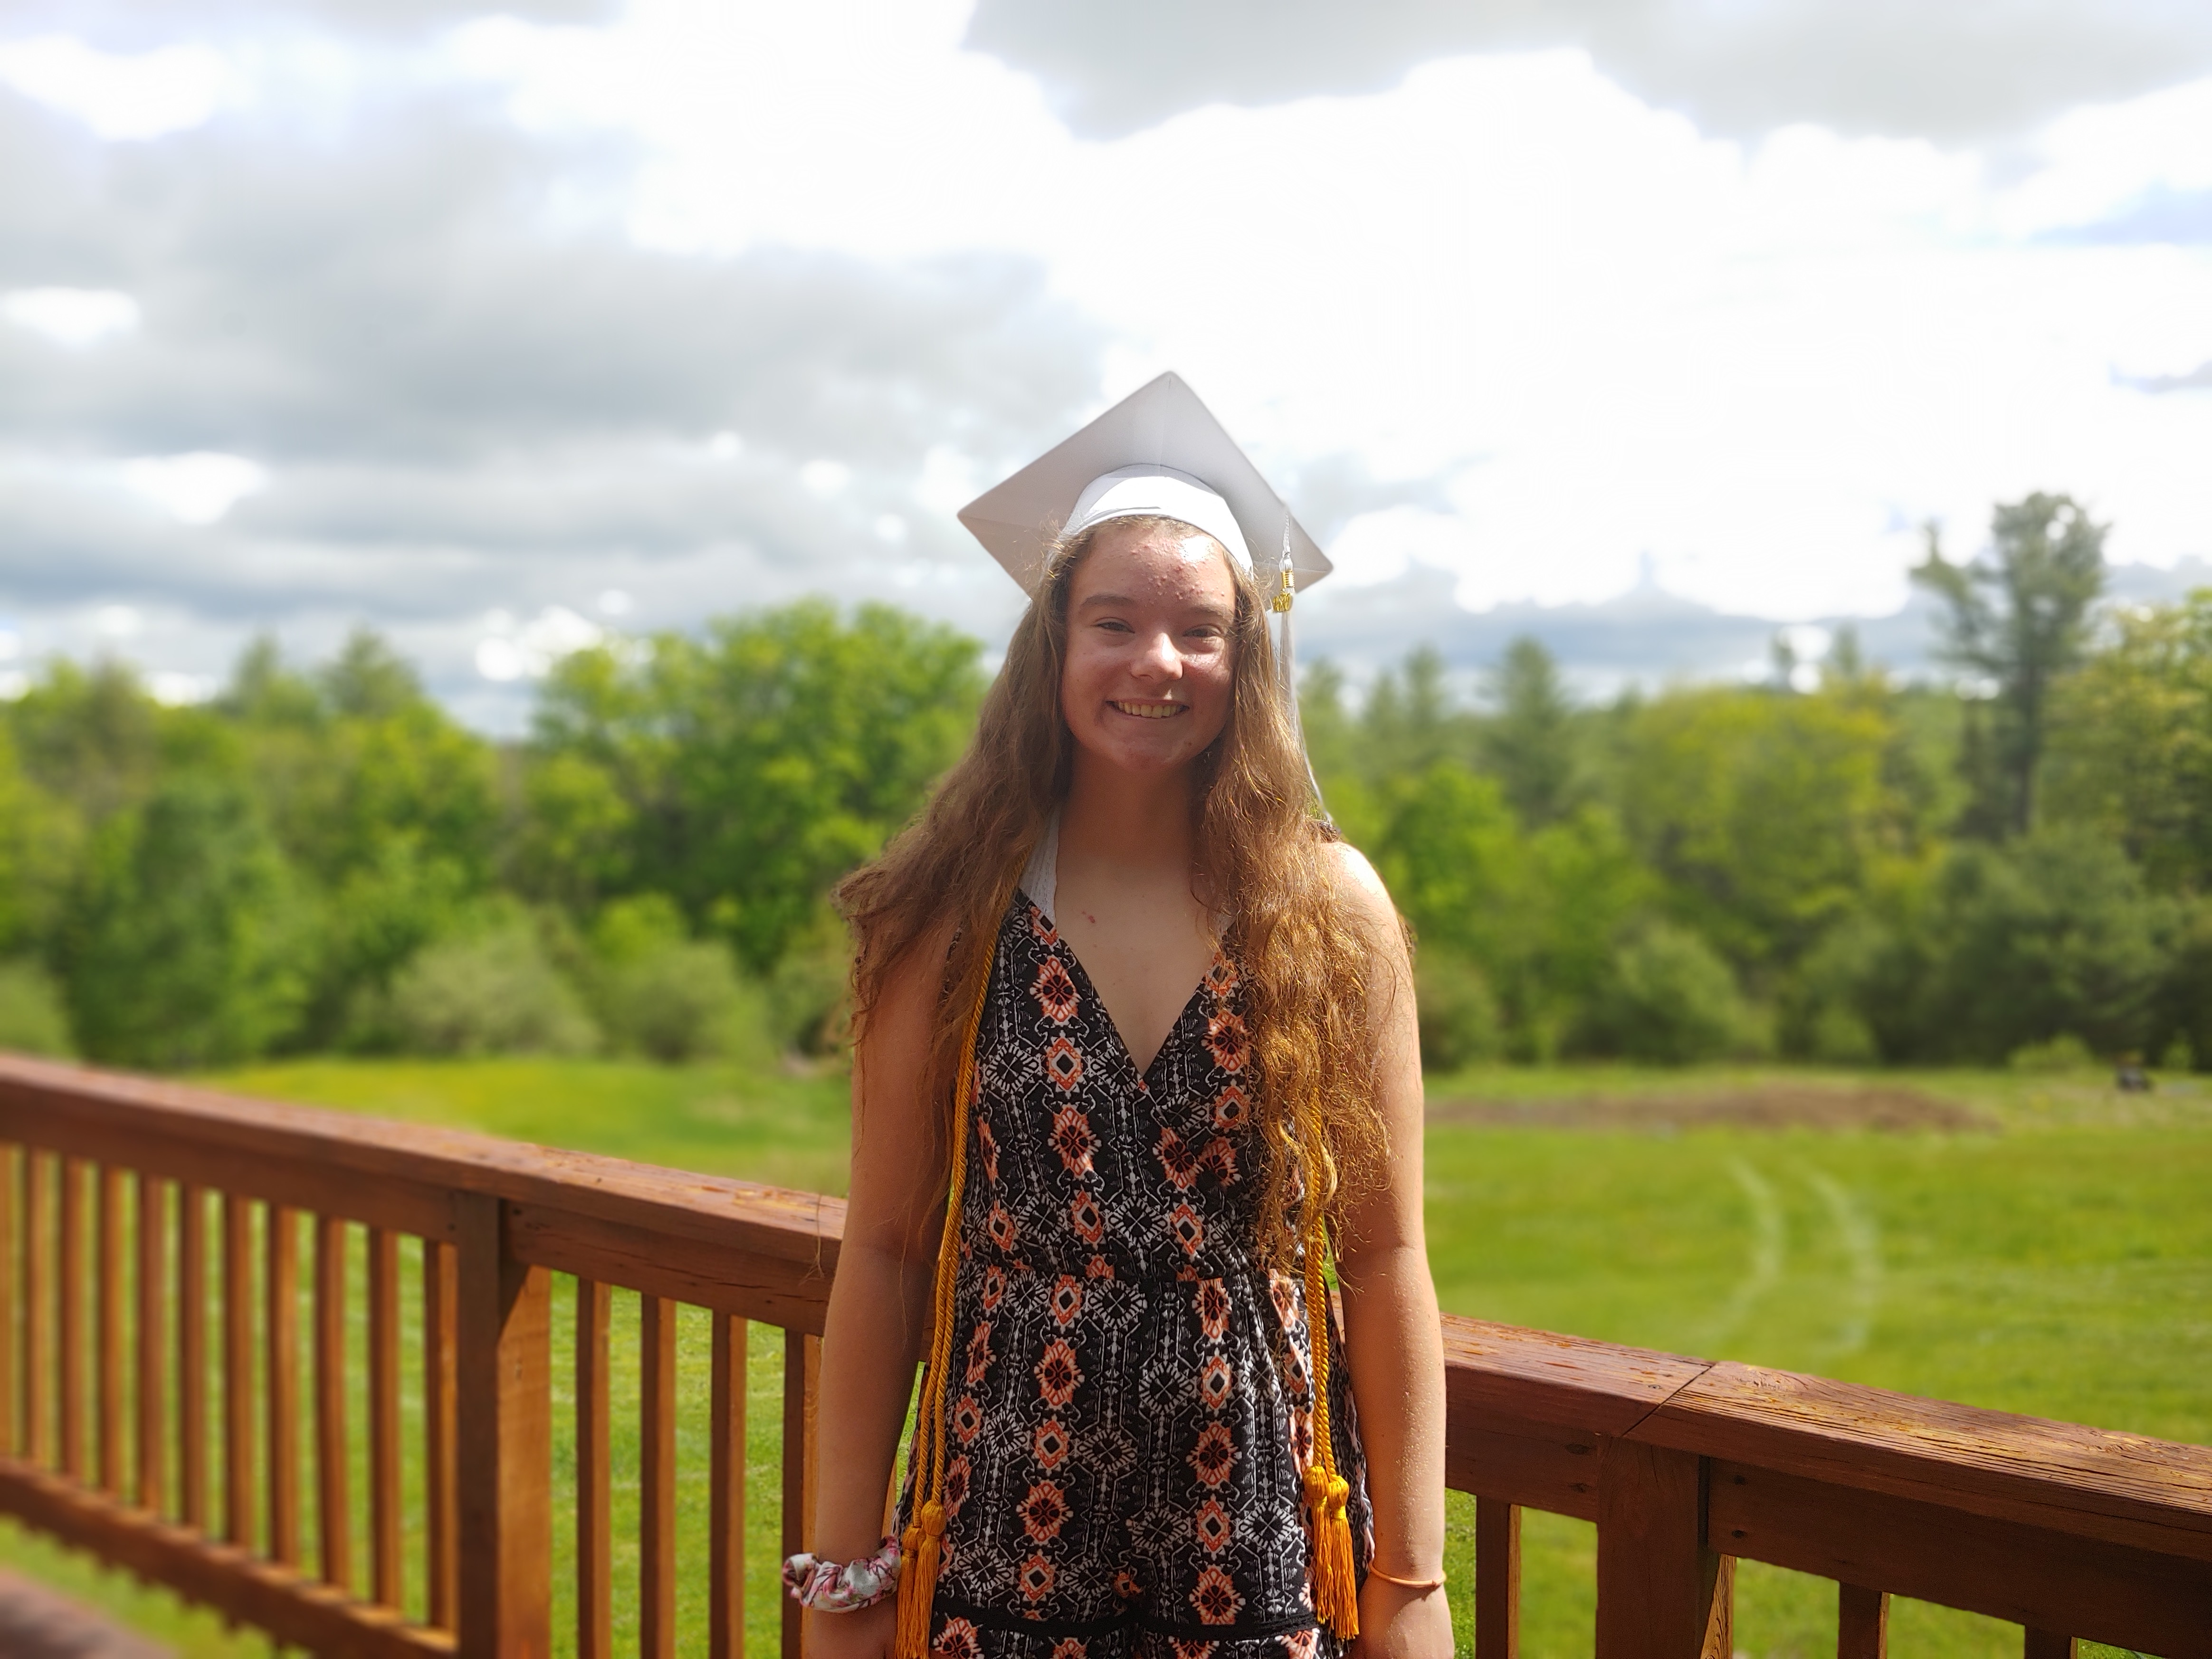 Proctor Academy Commencement